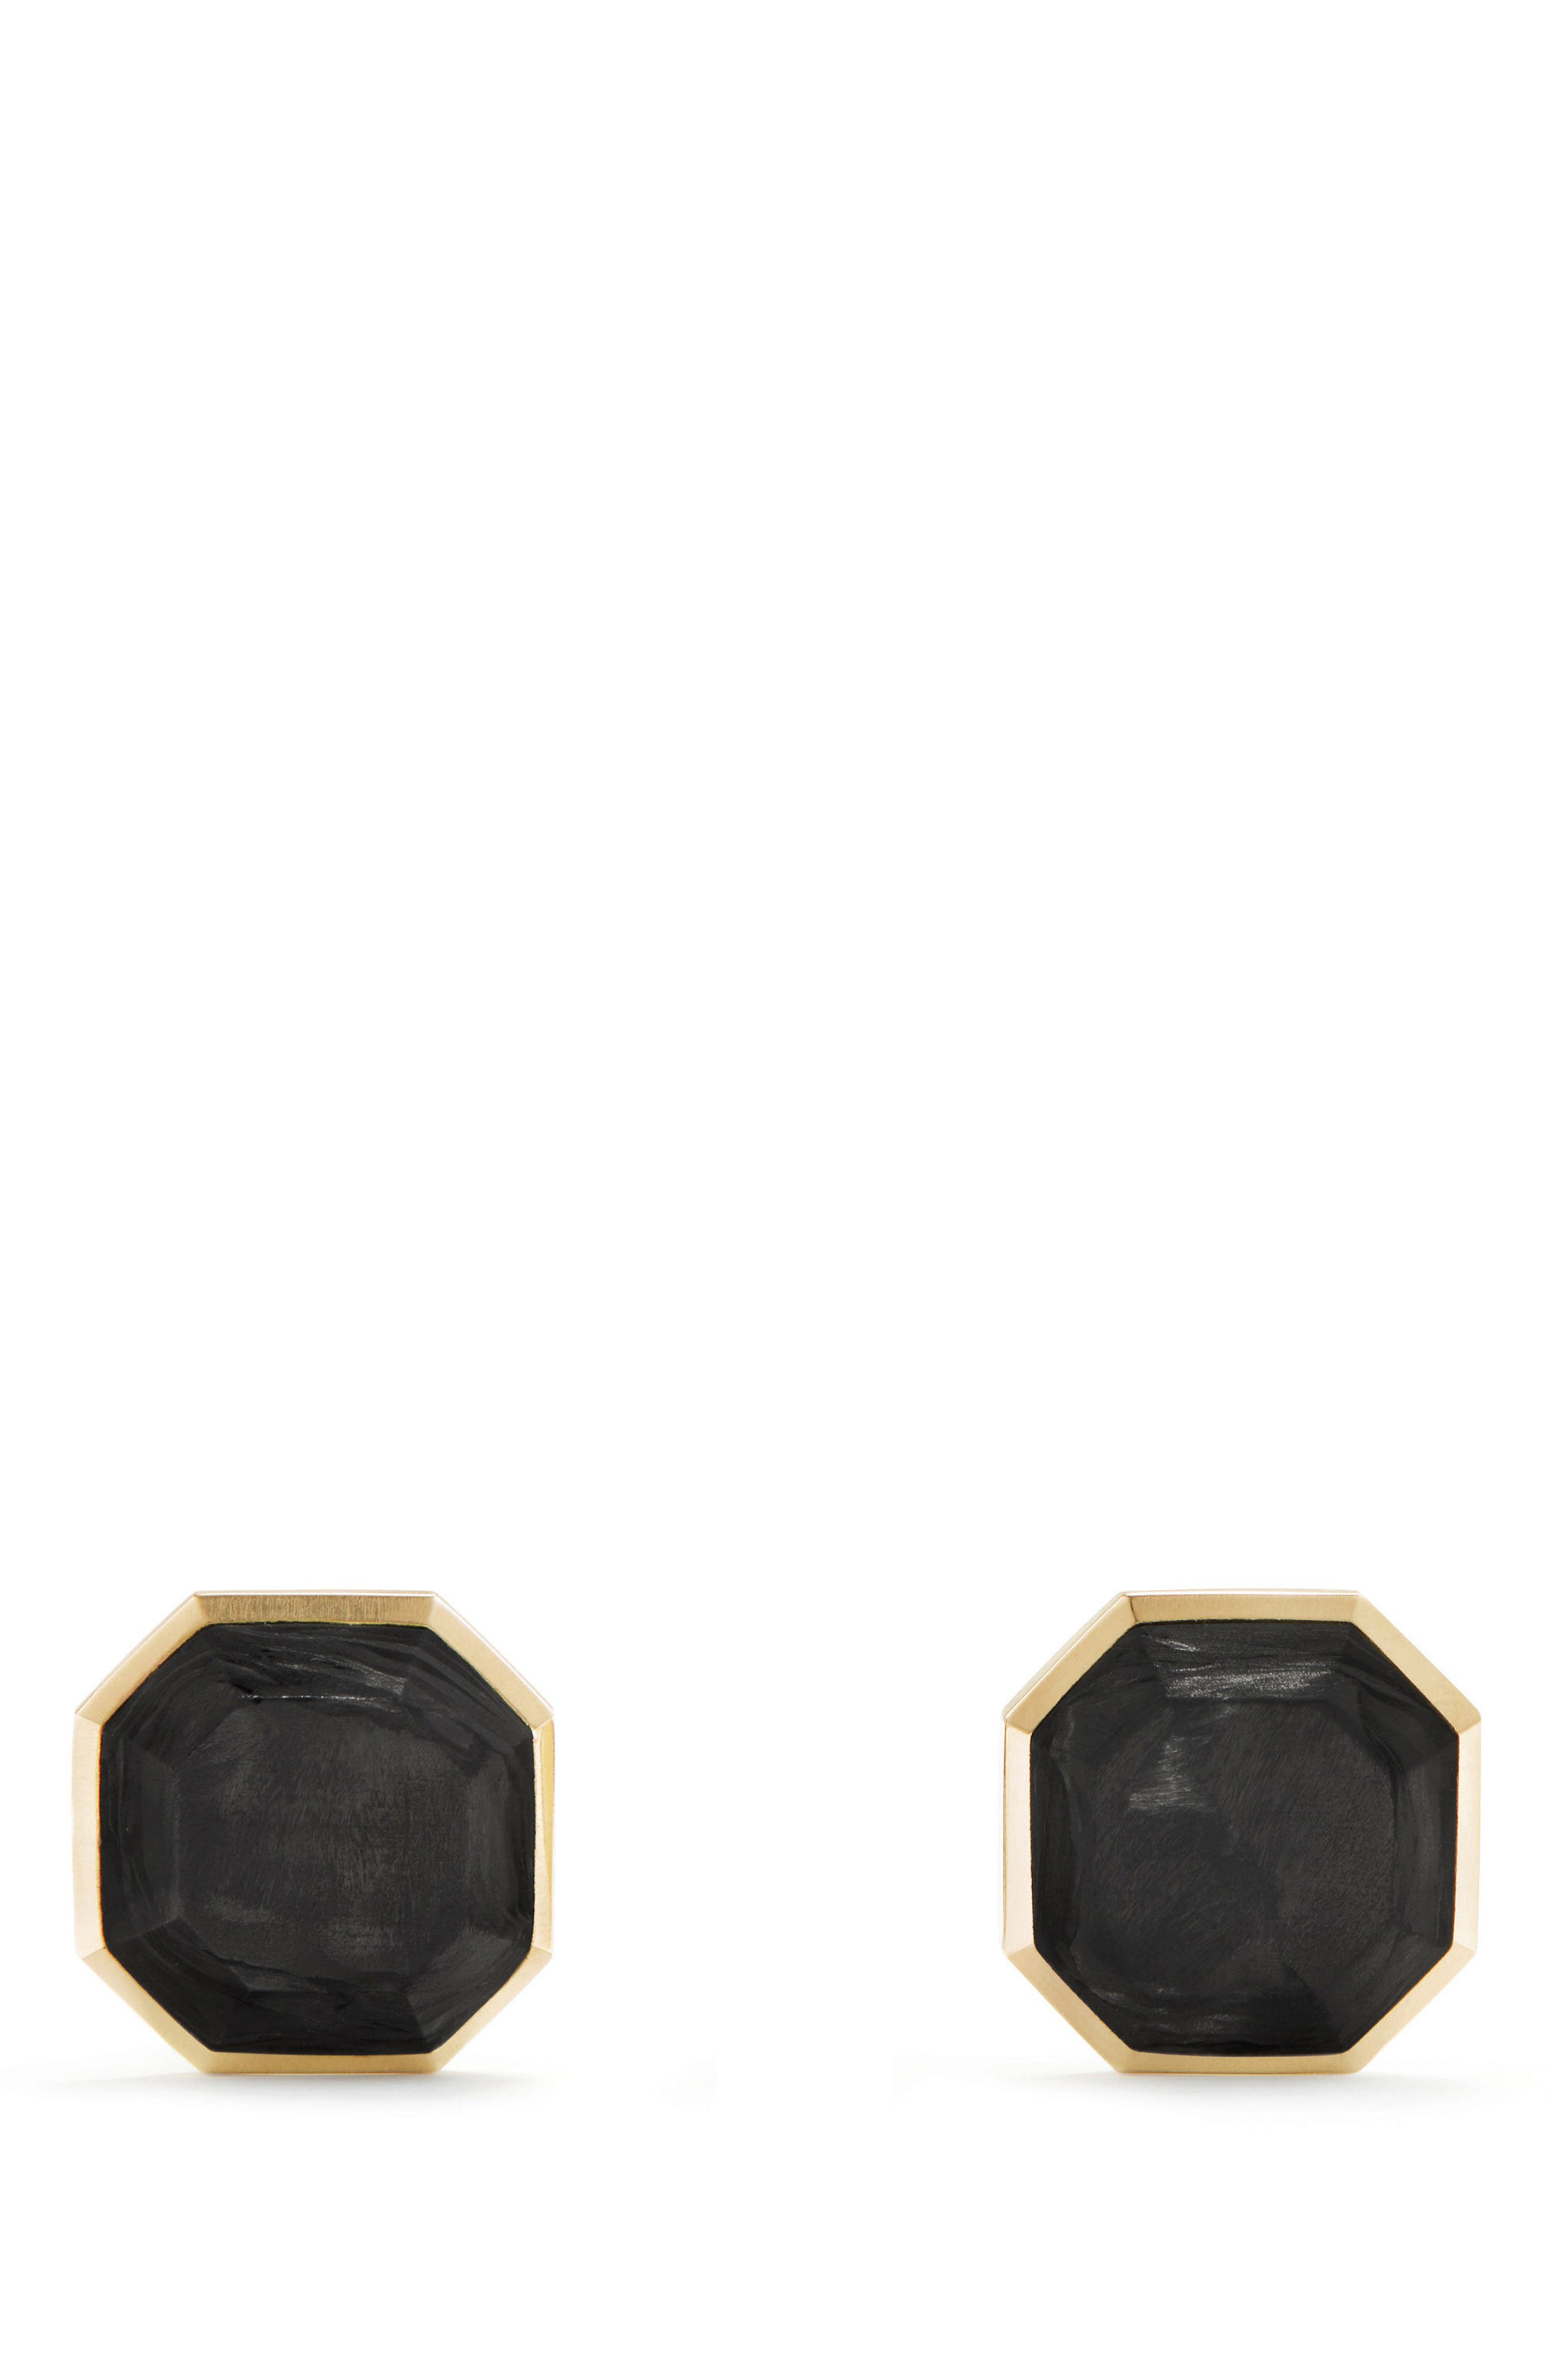 Forged Carbon Cufflinks in 18K Gold,                         Main,                         color, Forged Carbon